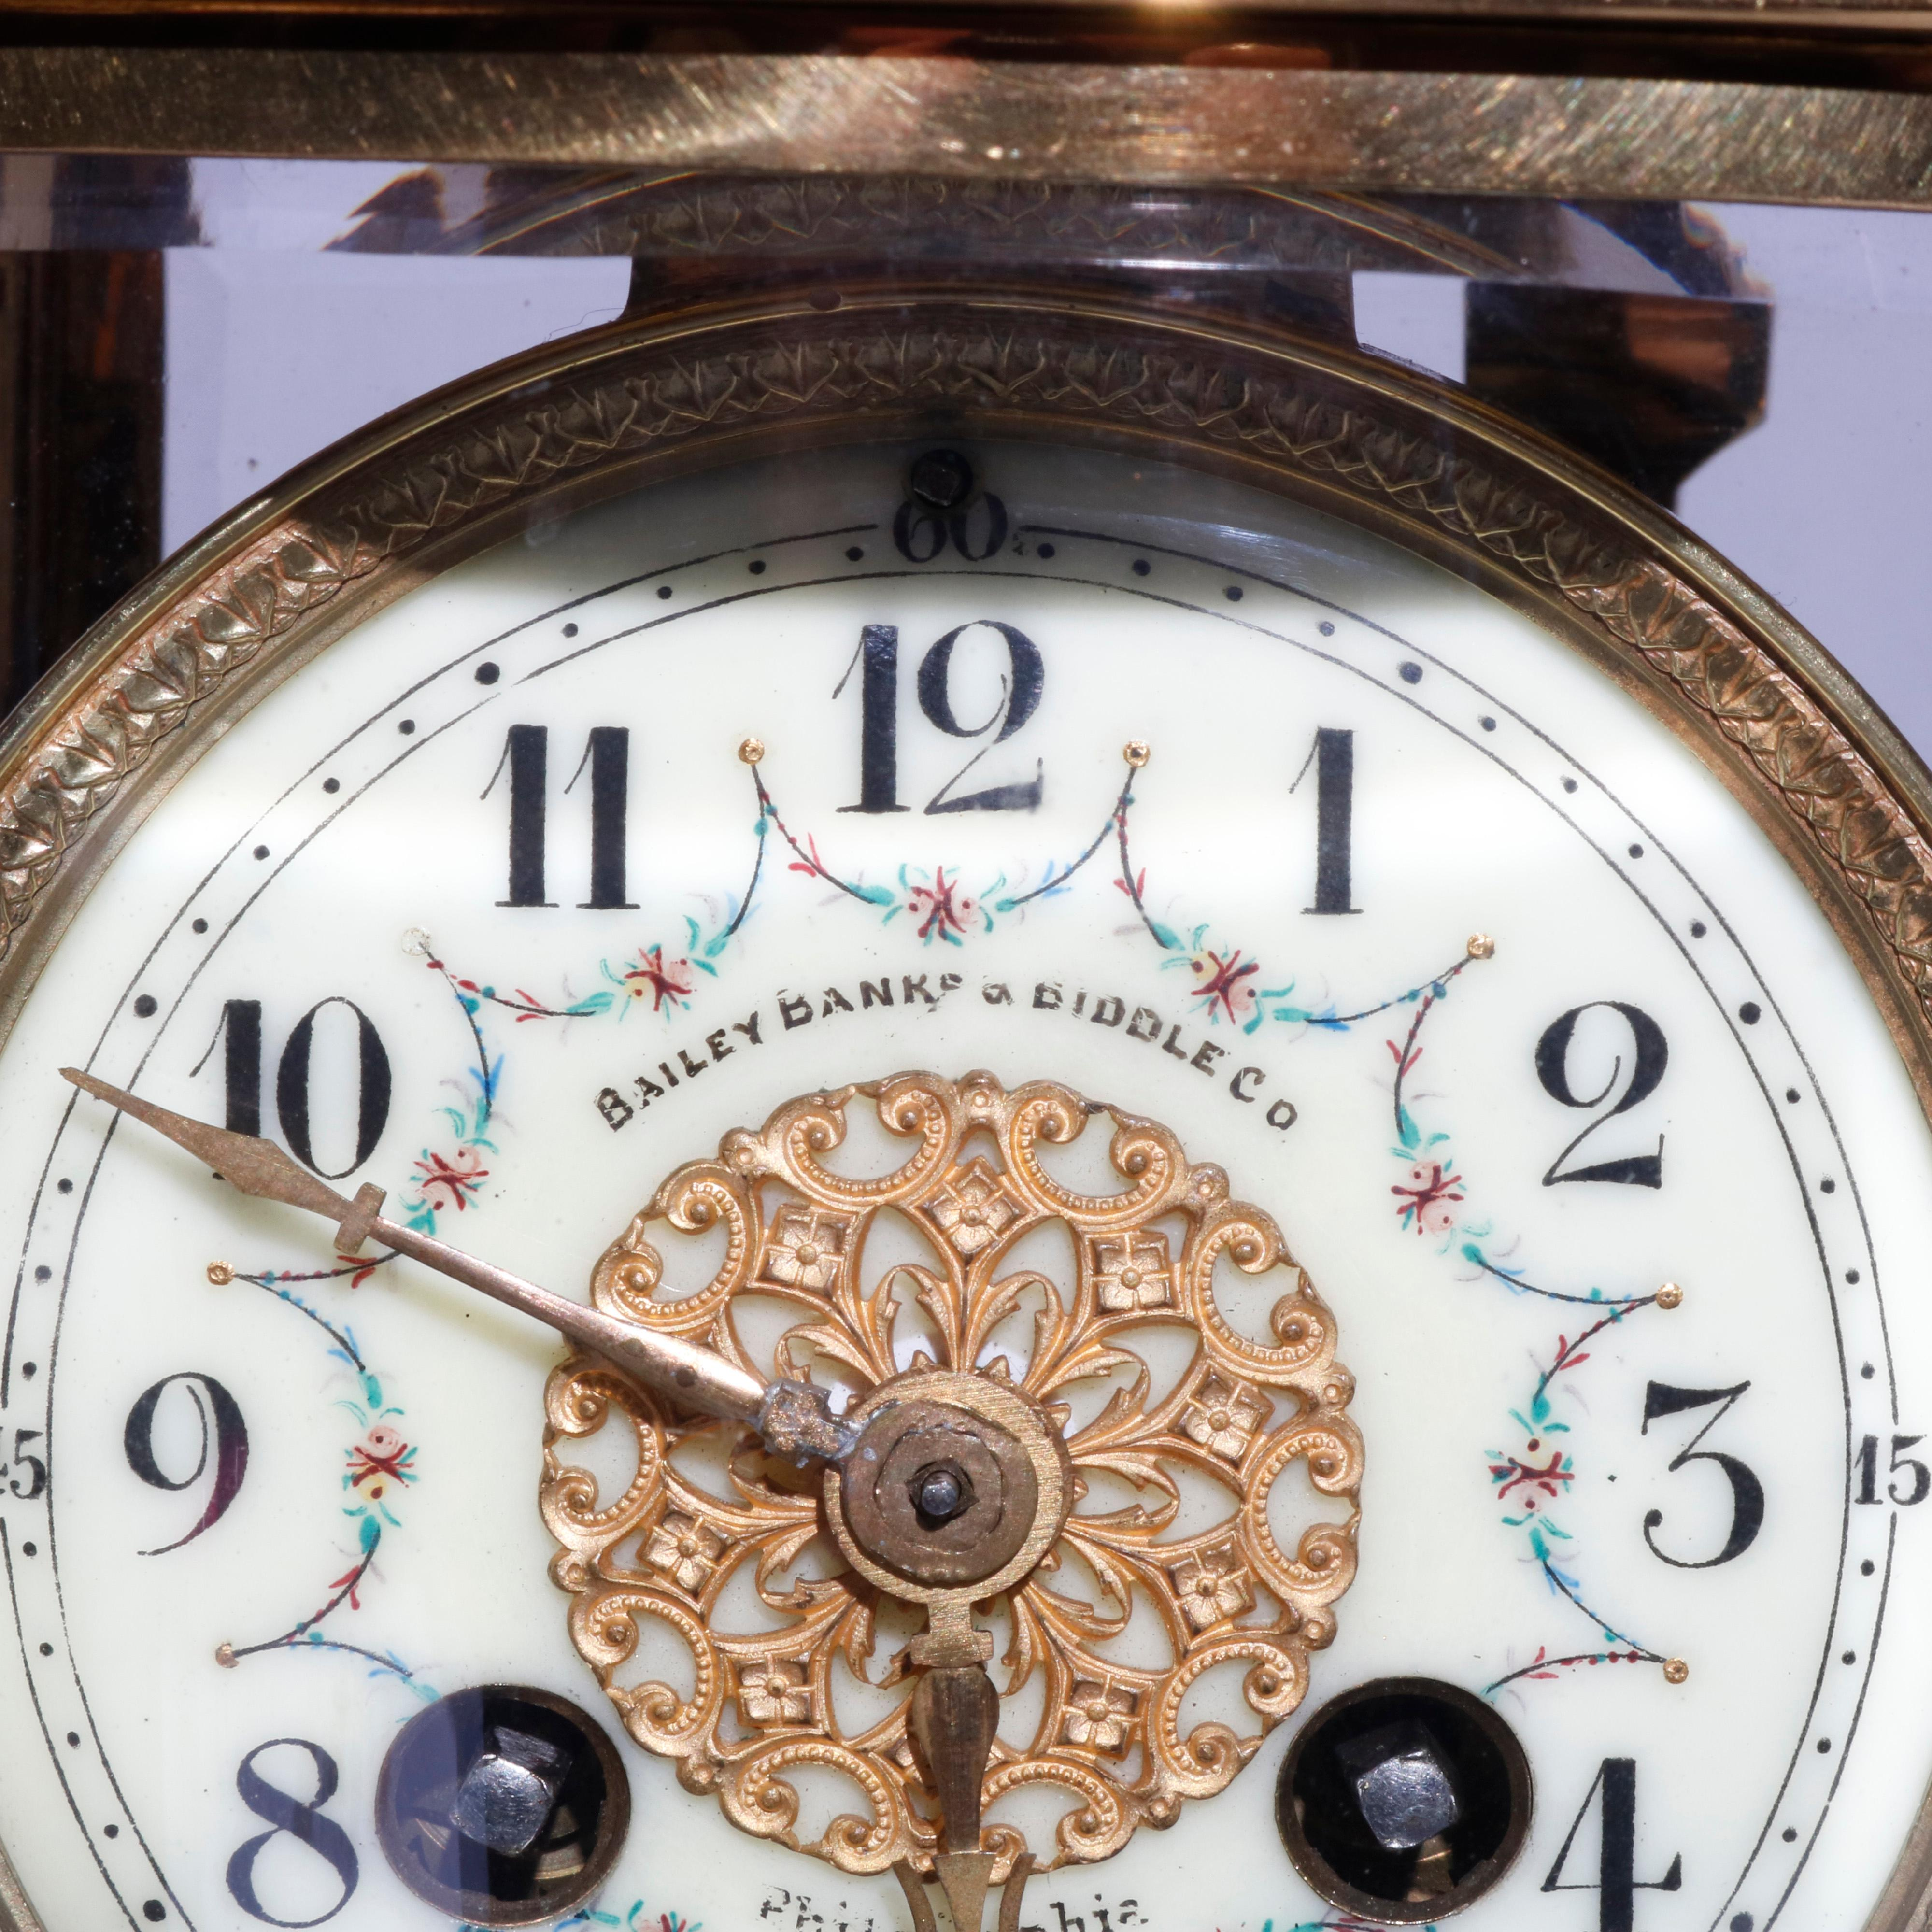 French D Argent For Bailey Banks And Biddle Crystal Regulator Clock Circa 1900 For Sale At 1stdibs